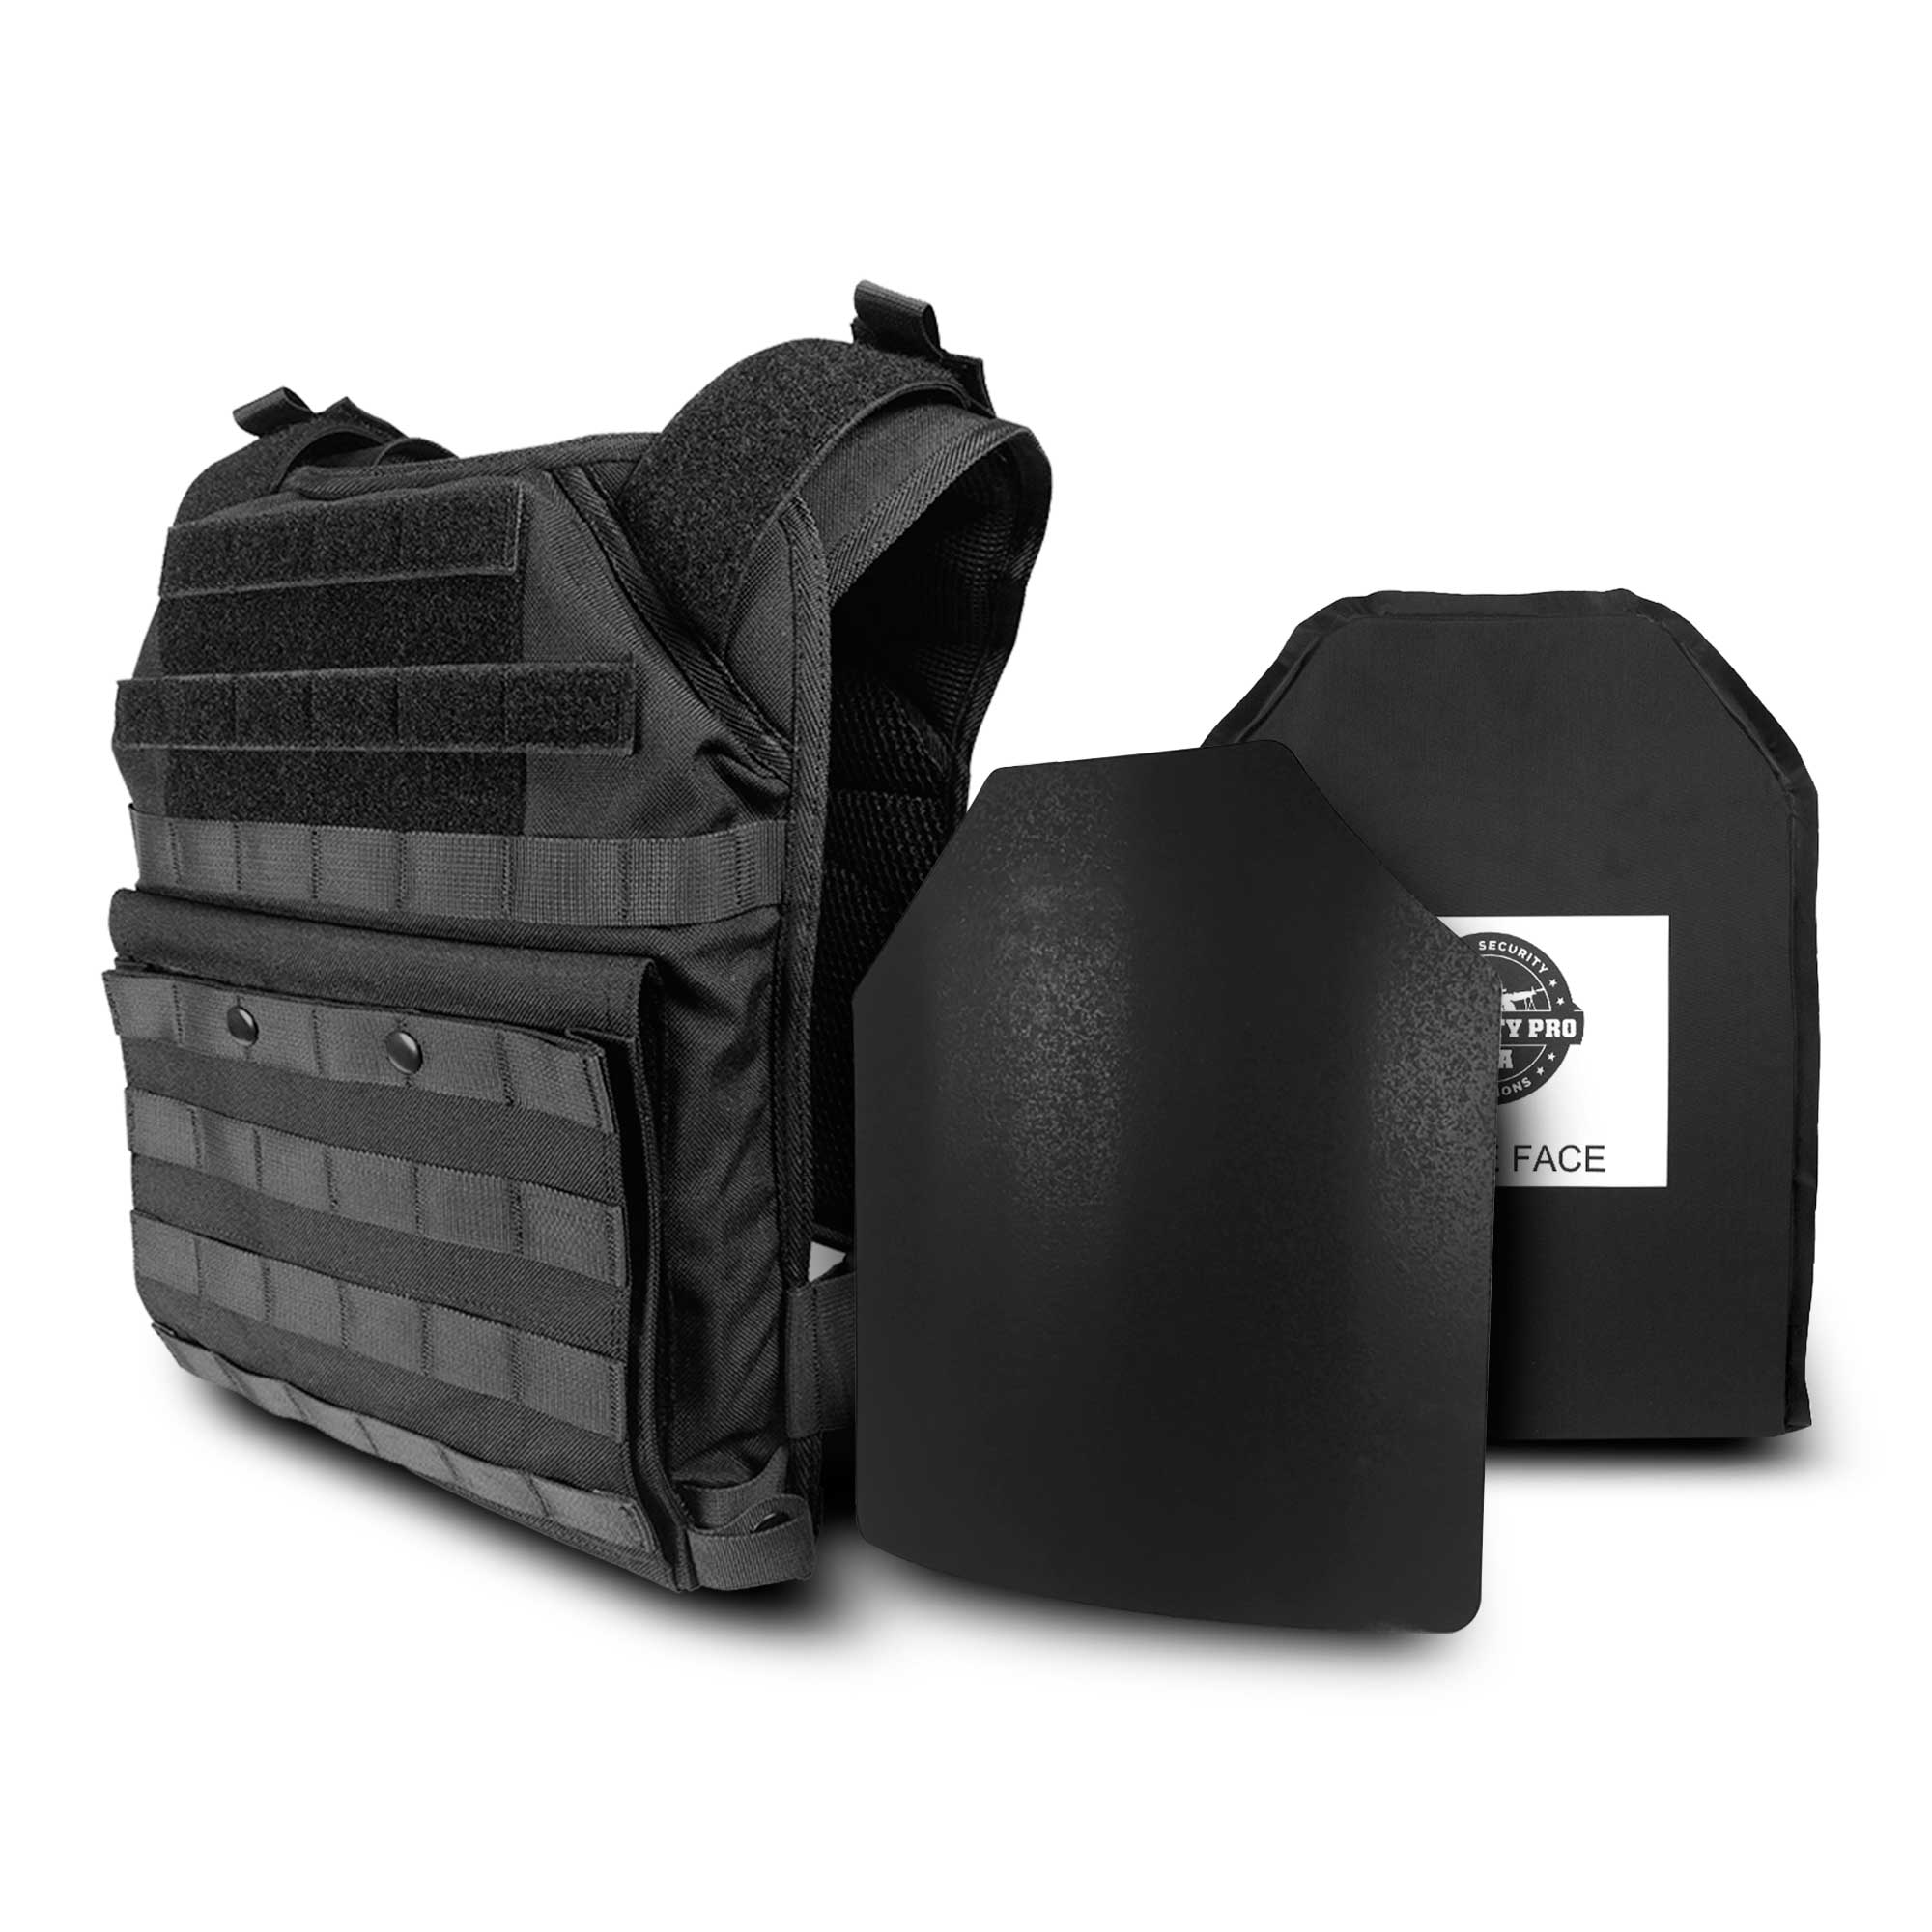 SecPro Shooter's Special Body Armor Bundle Bulletproof Vest Tactical Ballistics